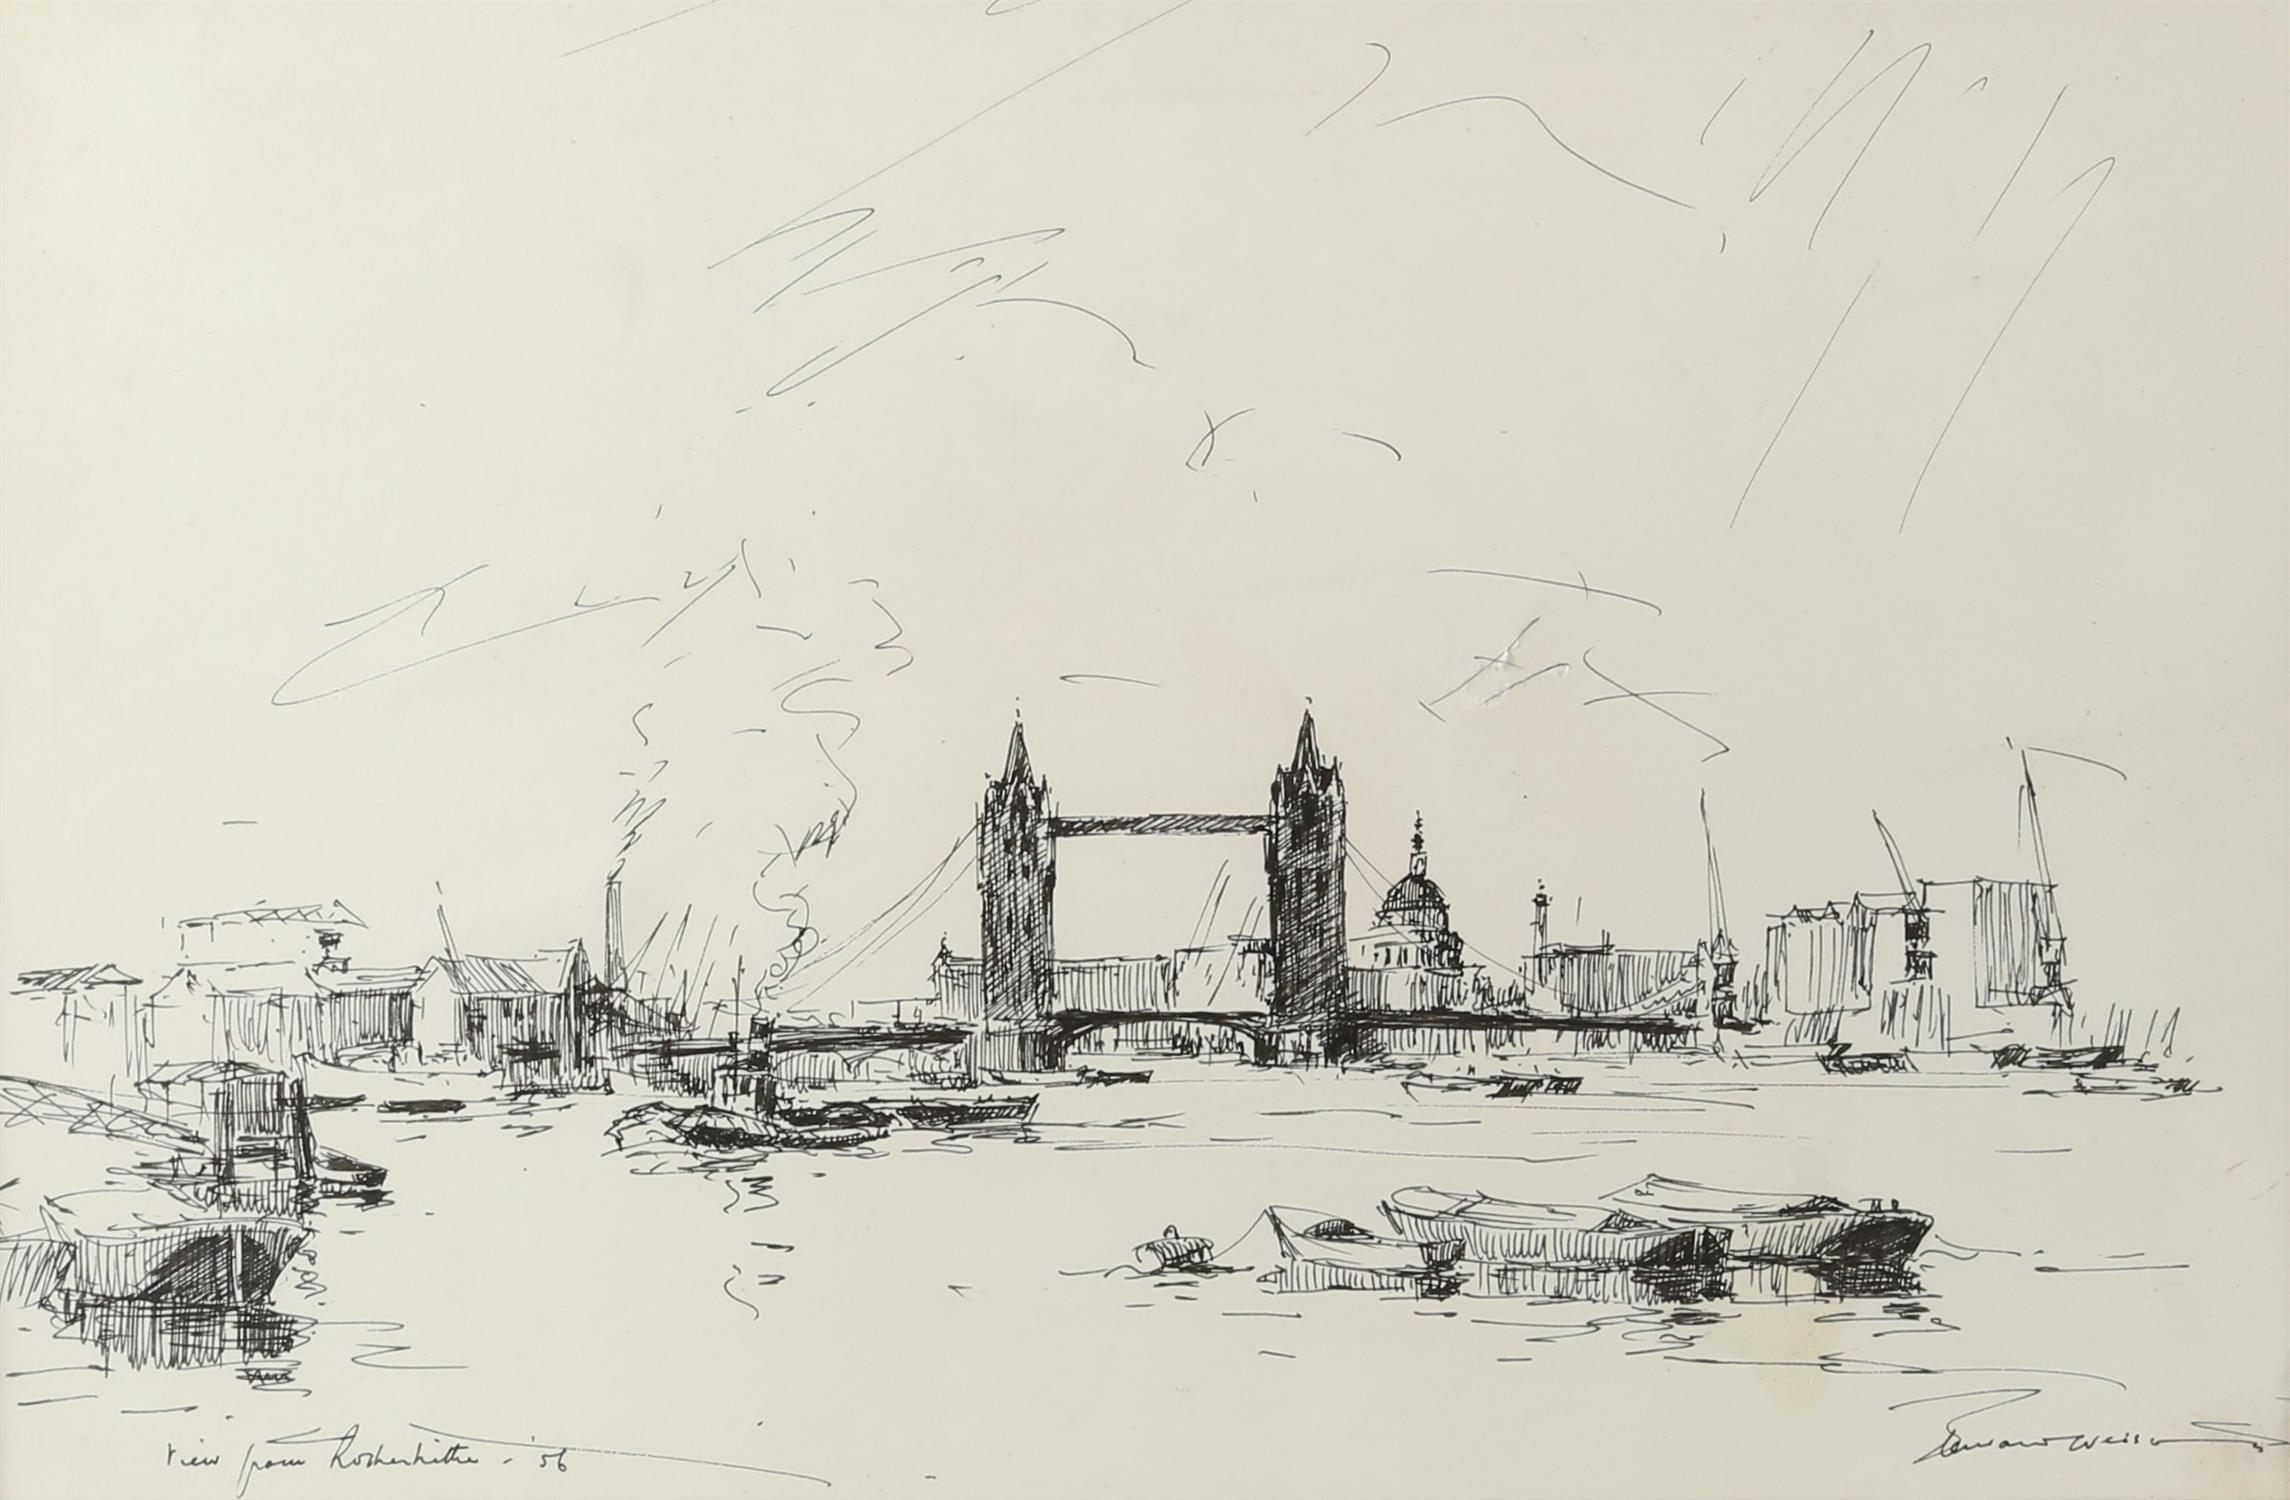 Edward Wesson (British 1910-1983), 'View from Rotherhithe', signed and dated '56, pen and ink,